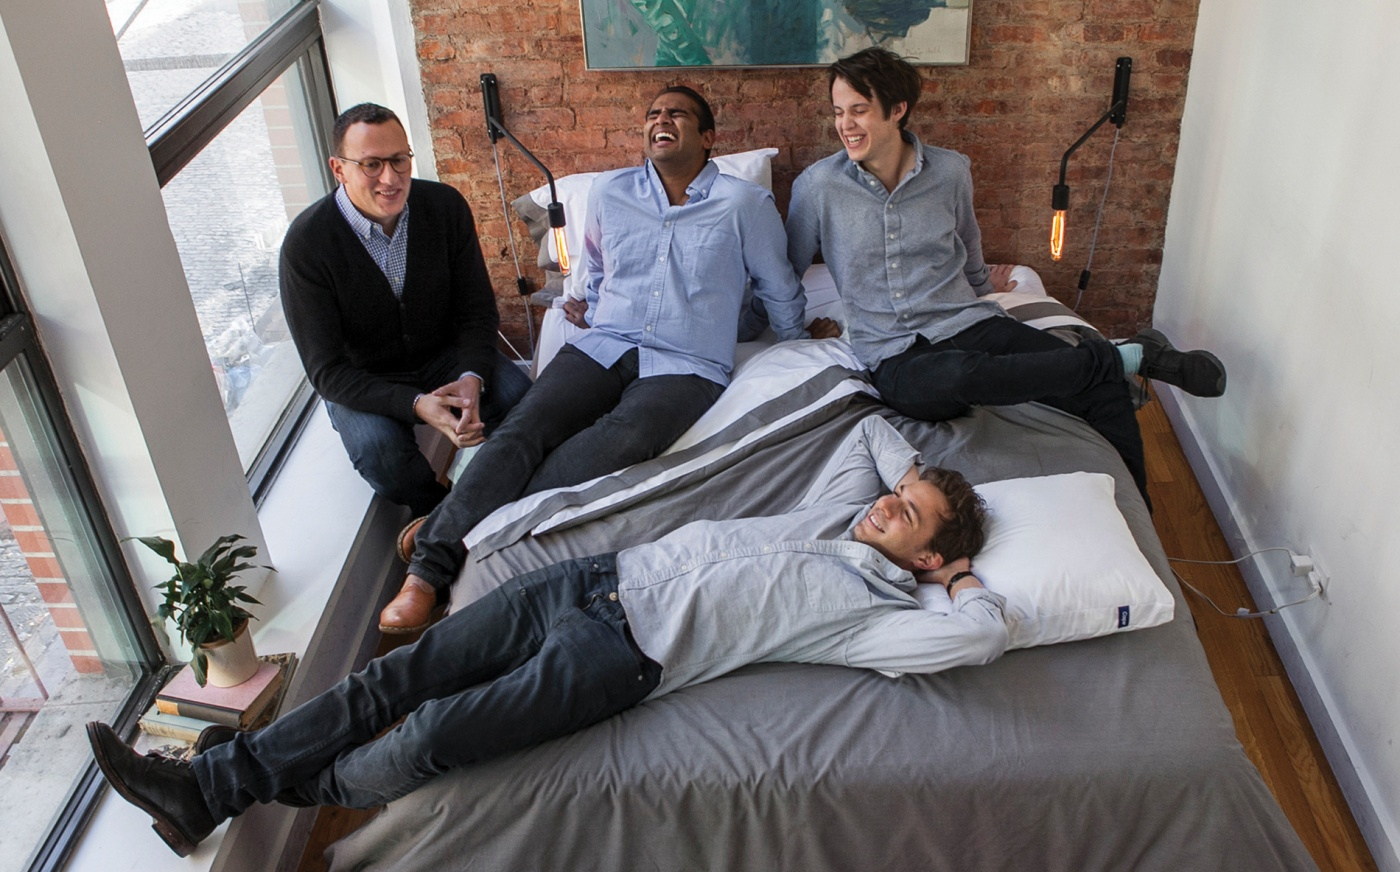 Gabriel Flateman, Philip Krim, Neil Parikh, and T. Luke Sherwin on a Casper mattress.